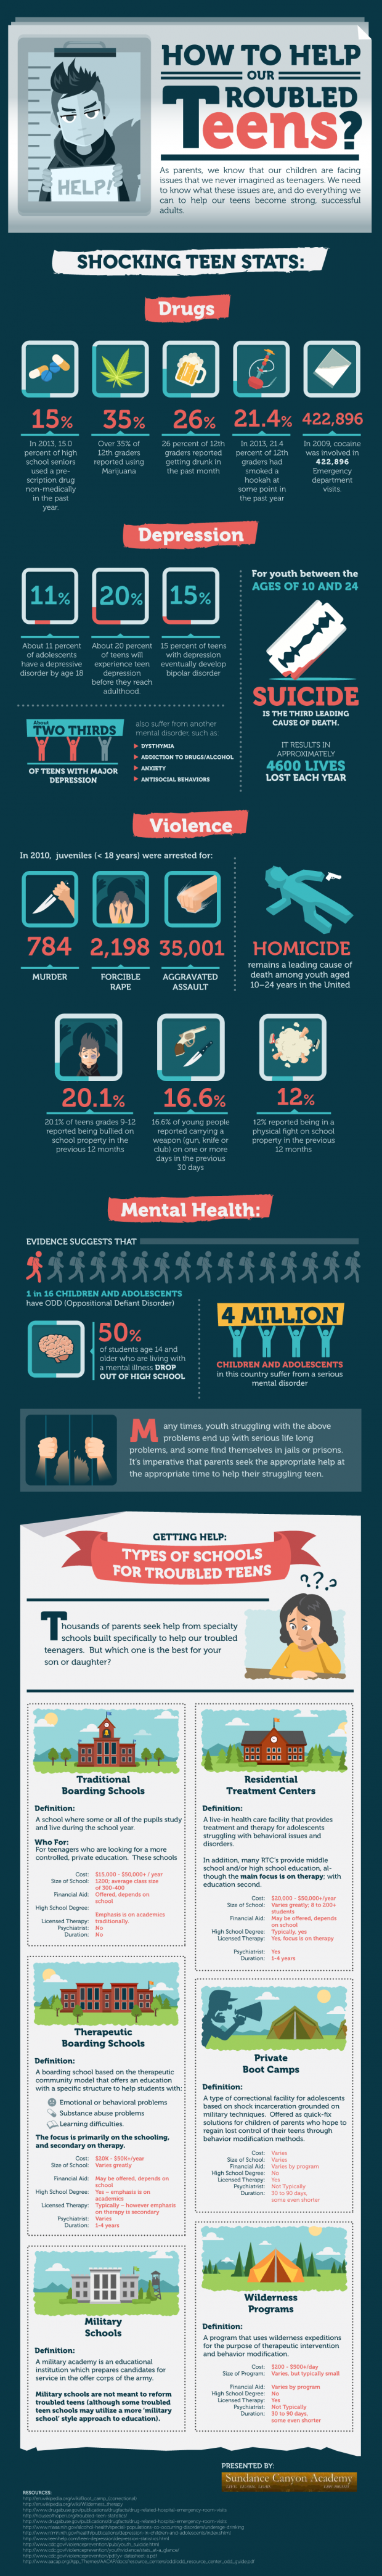 How-to-Help-Our-Troubled-Teens-Infographic